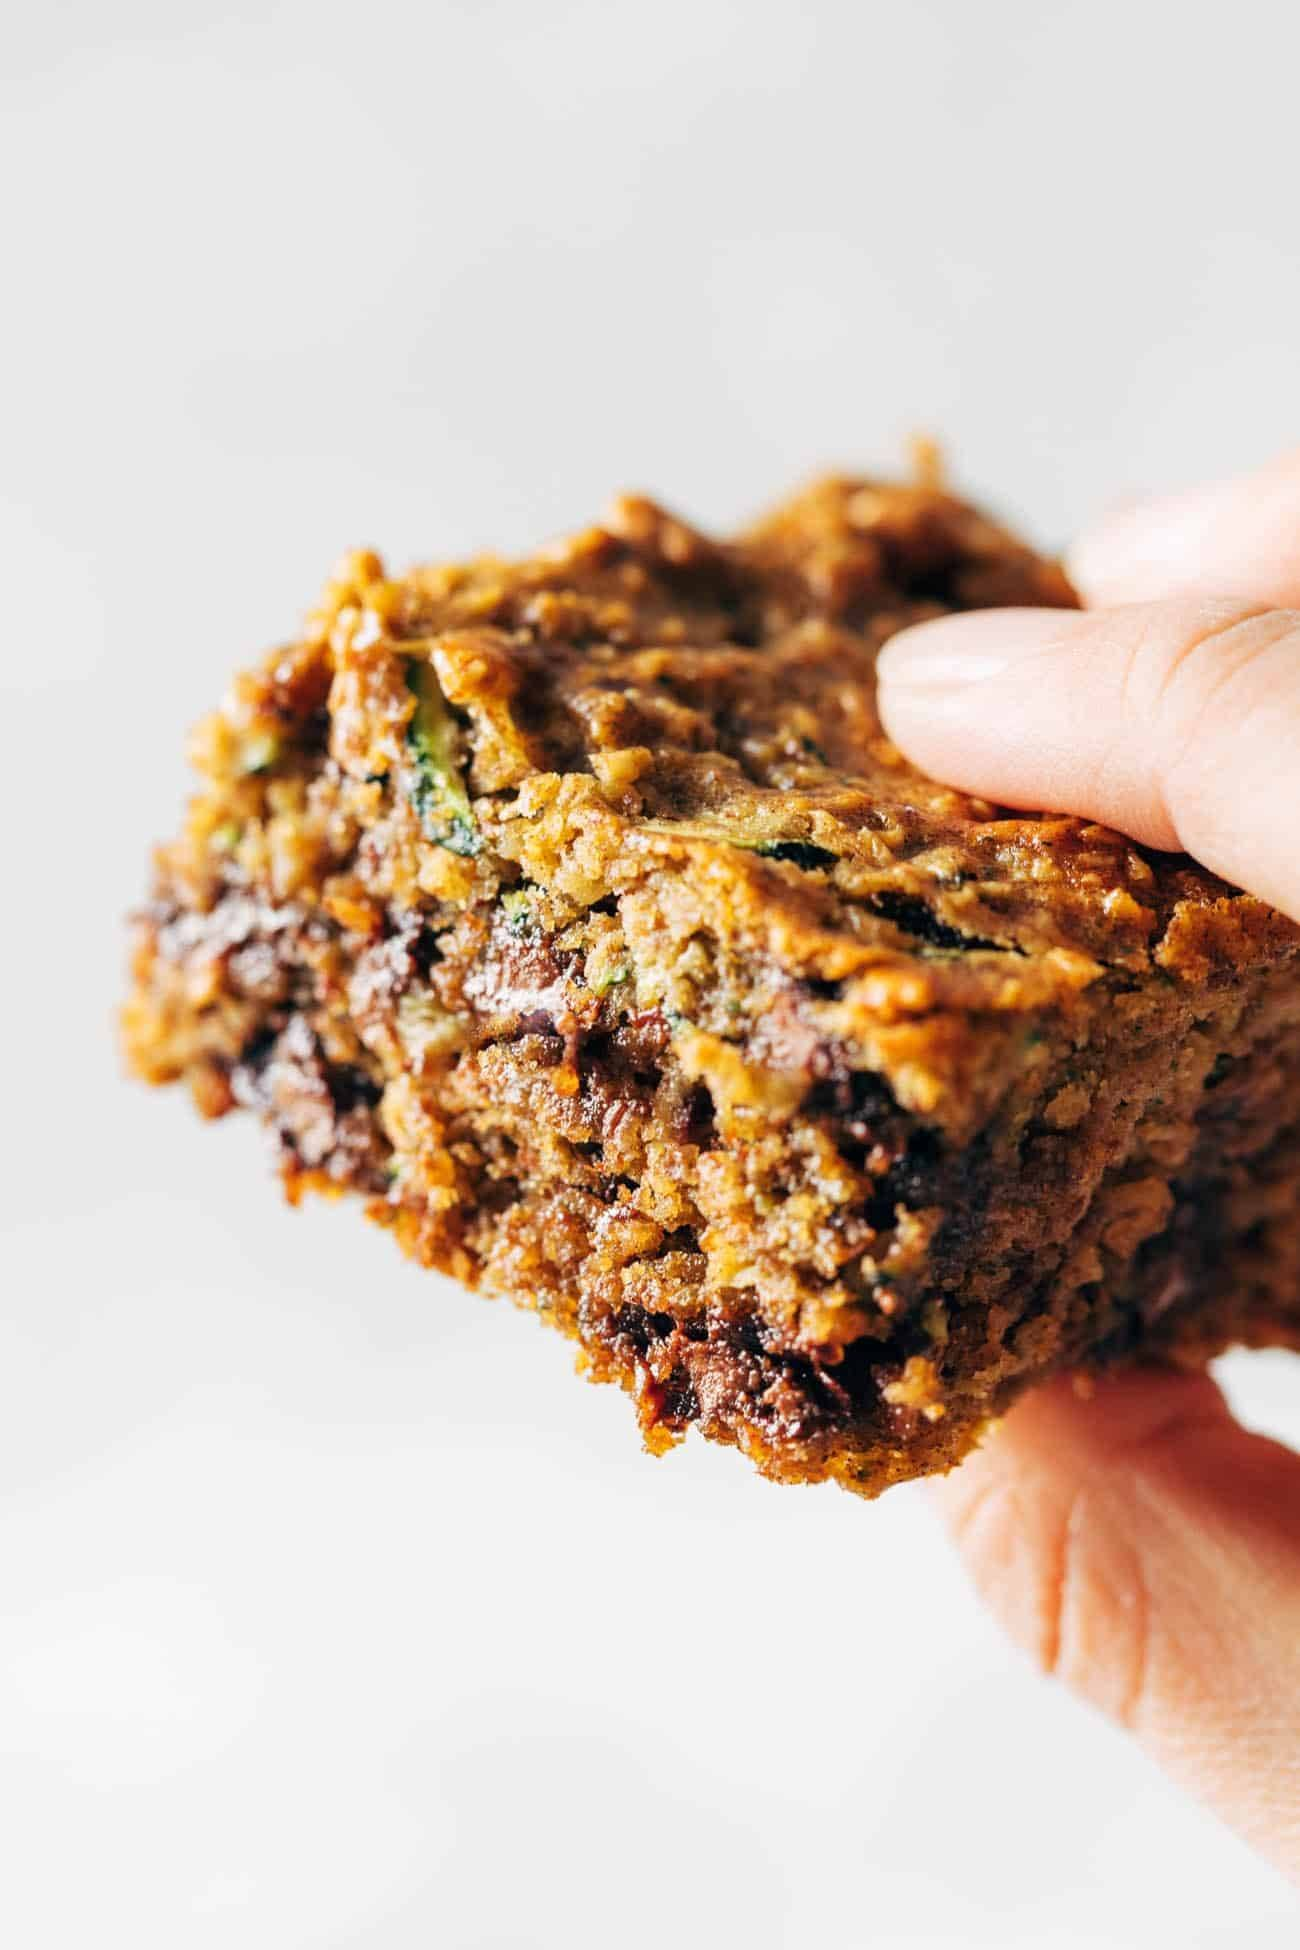 Close-up image of a white hand holding an almond butter chocolate chip zucchini bar.